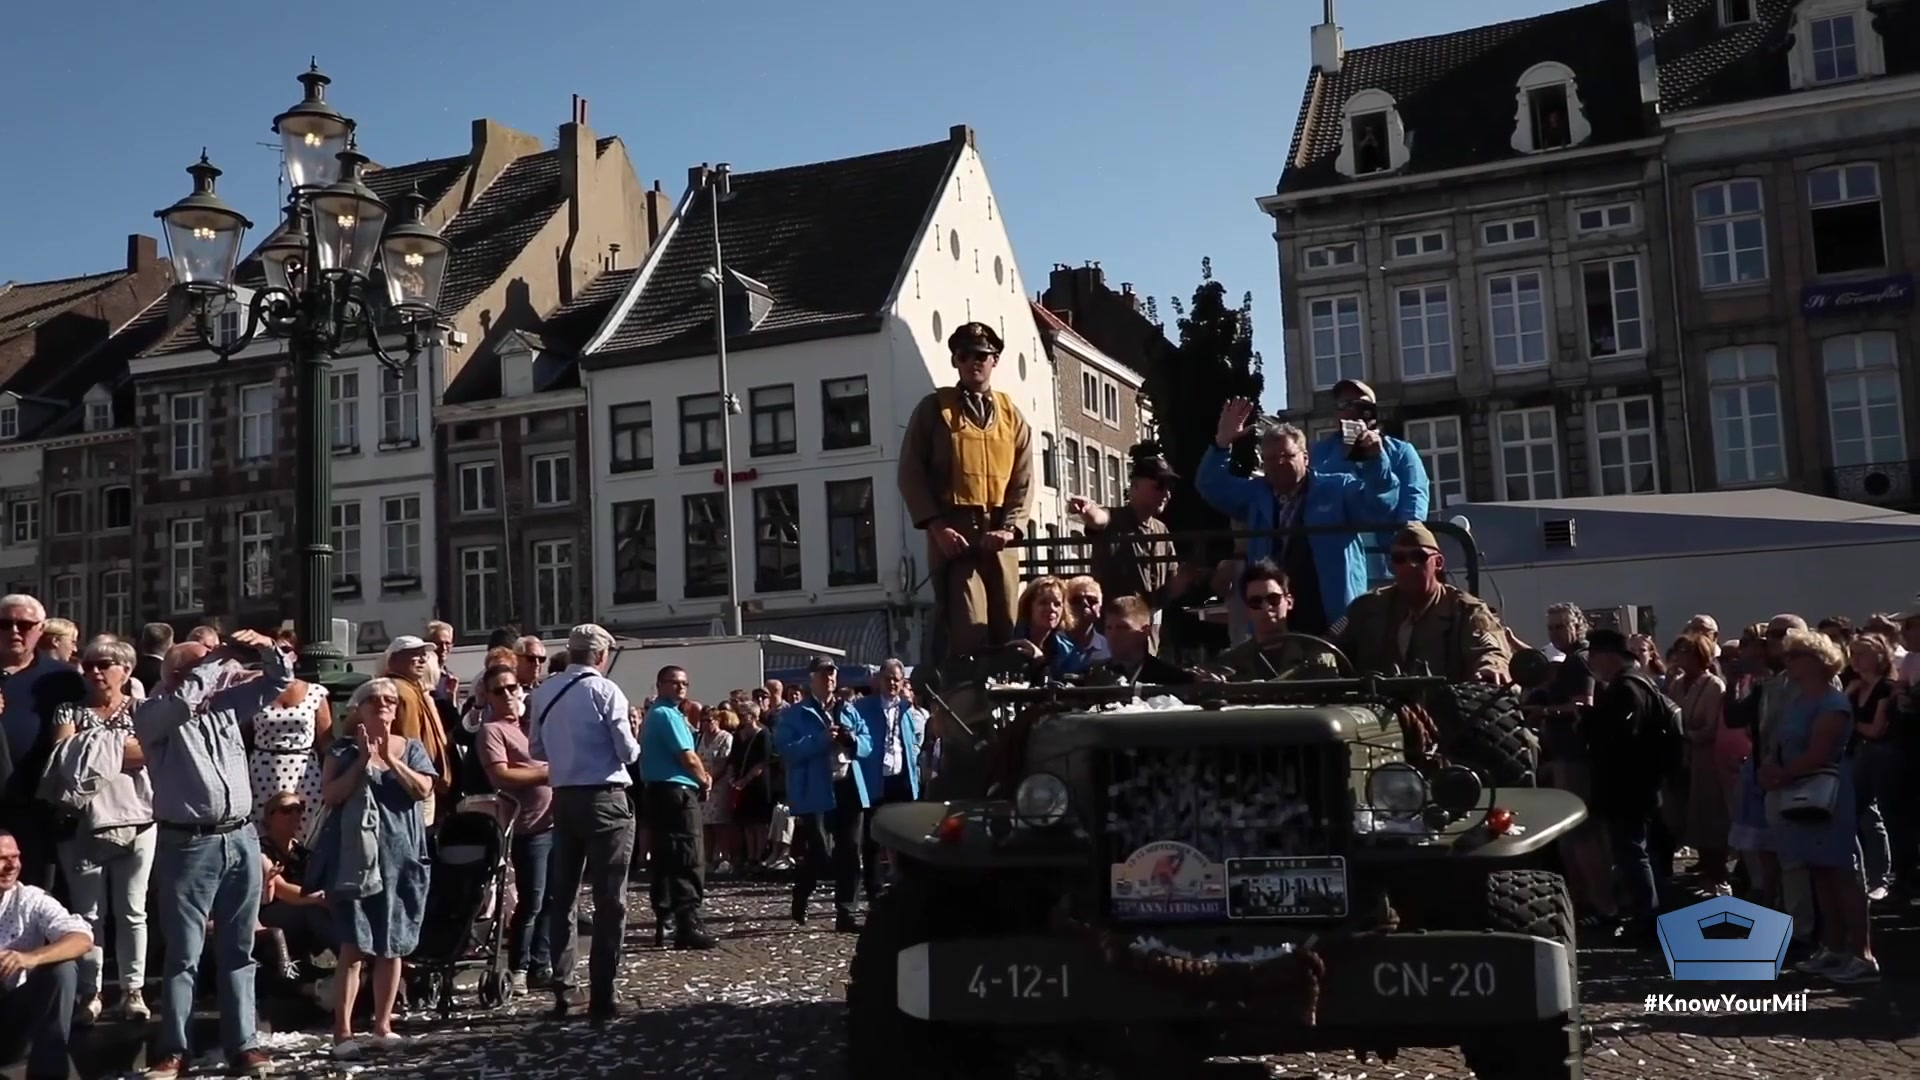 A parade in Maastricht, Netherlands, honored U.S. World World II veterans, Sept. 14, 2019. Soldiers assigned to the Army's 30th Infantry Division helped liberate the city in 1944. Four men who served in the division traveled to the Netherlands with the North Carolina National Guard to celebrate the 75th anniversary of the liberation of Limburg province; Maastricht is the province's capital. The NCNG's 30th Armored Brigade Combat Team traces its lineage to the 30th Infantry Division and guardsmen's uniforms still bear the same unit patch.  Veterans John O'Hare and Tony Jaber talk about their experience in 1944 and the welcome they received 75 years later.